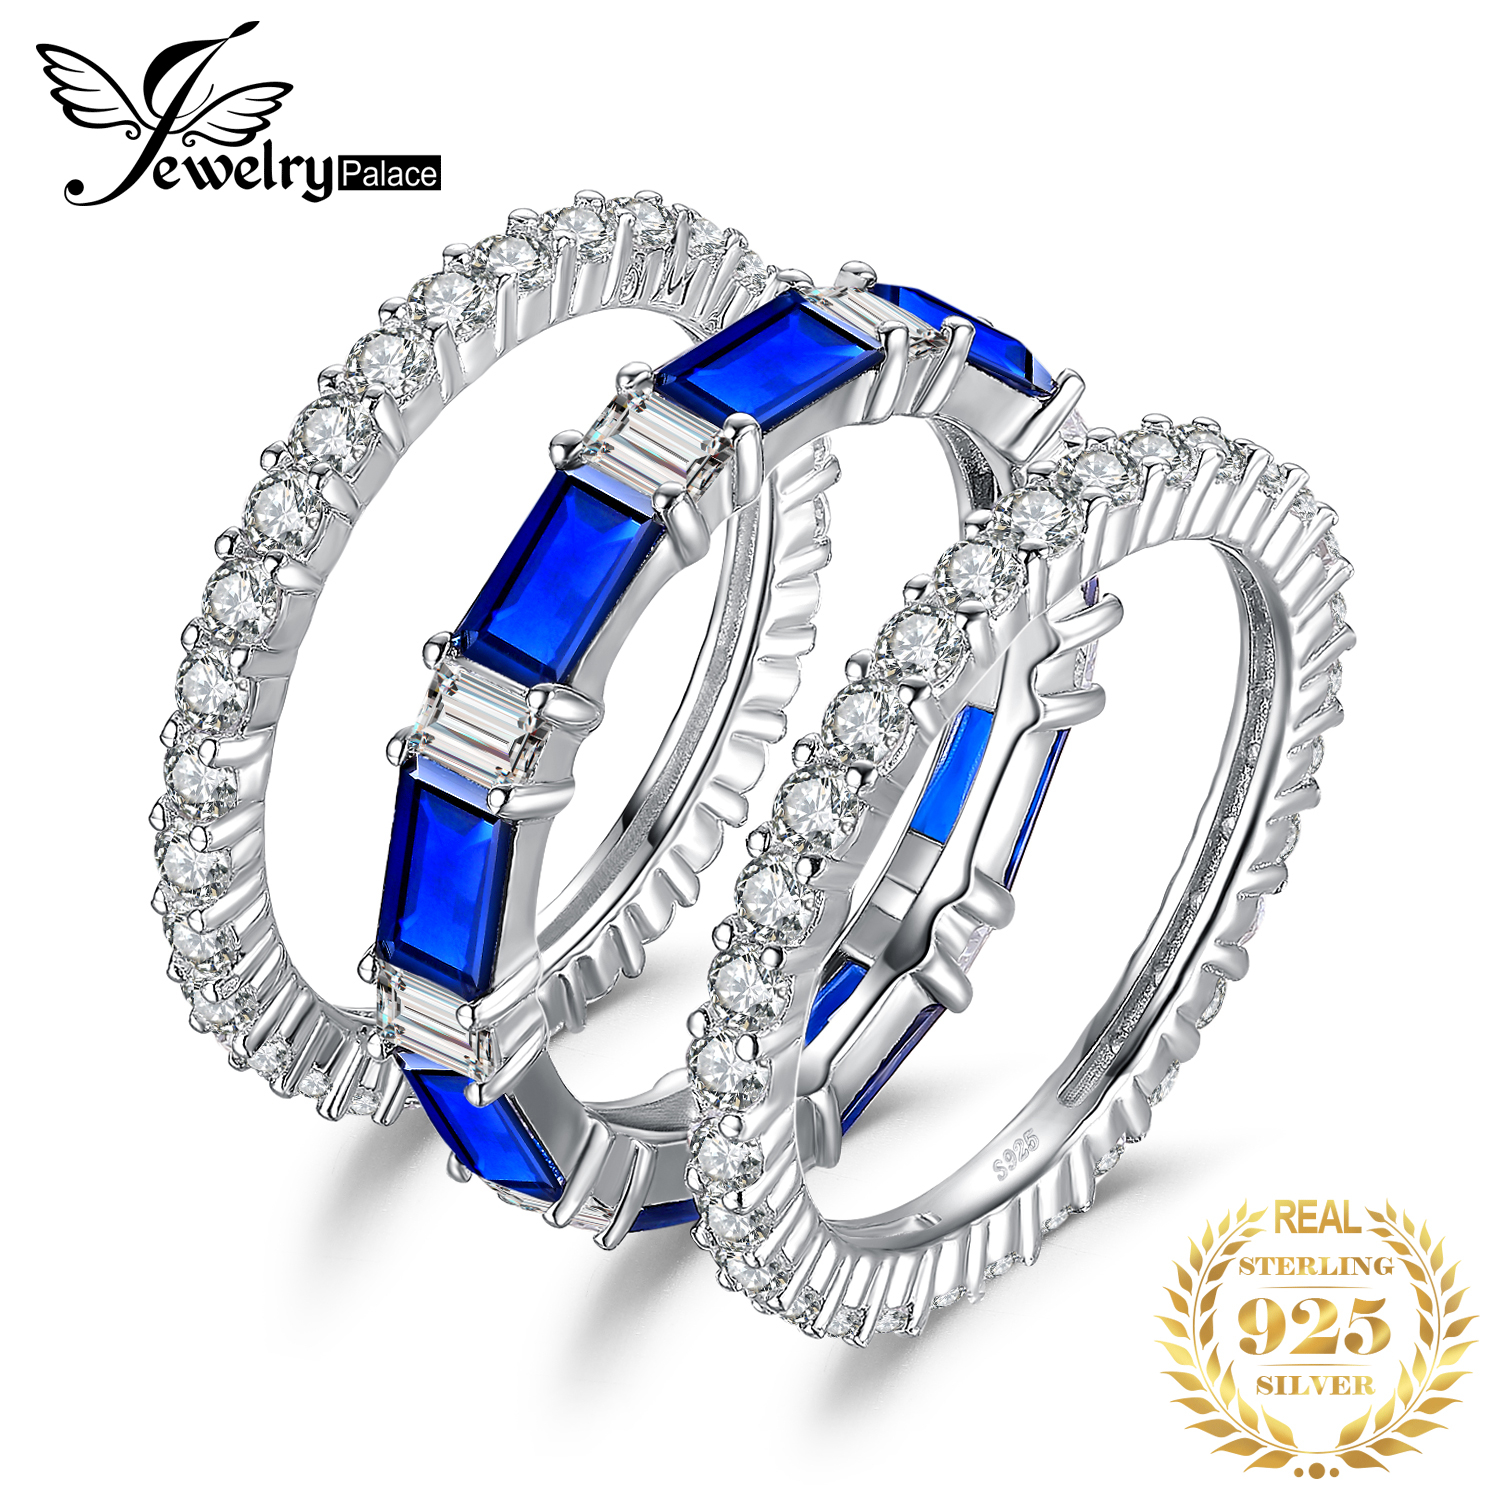 7ct Created Spinel Wedding Rings Sets 925 Sterling Silver Rings For Women Anniversary Eternity Stackable Band Silver 925 Jewelry